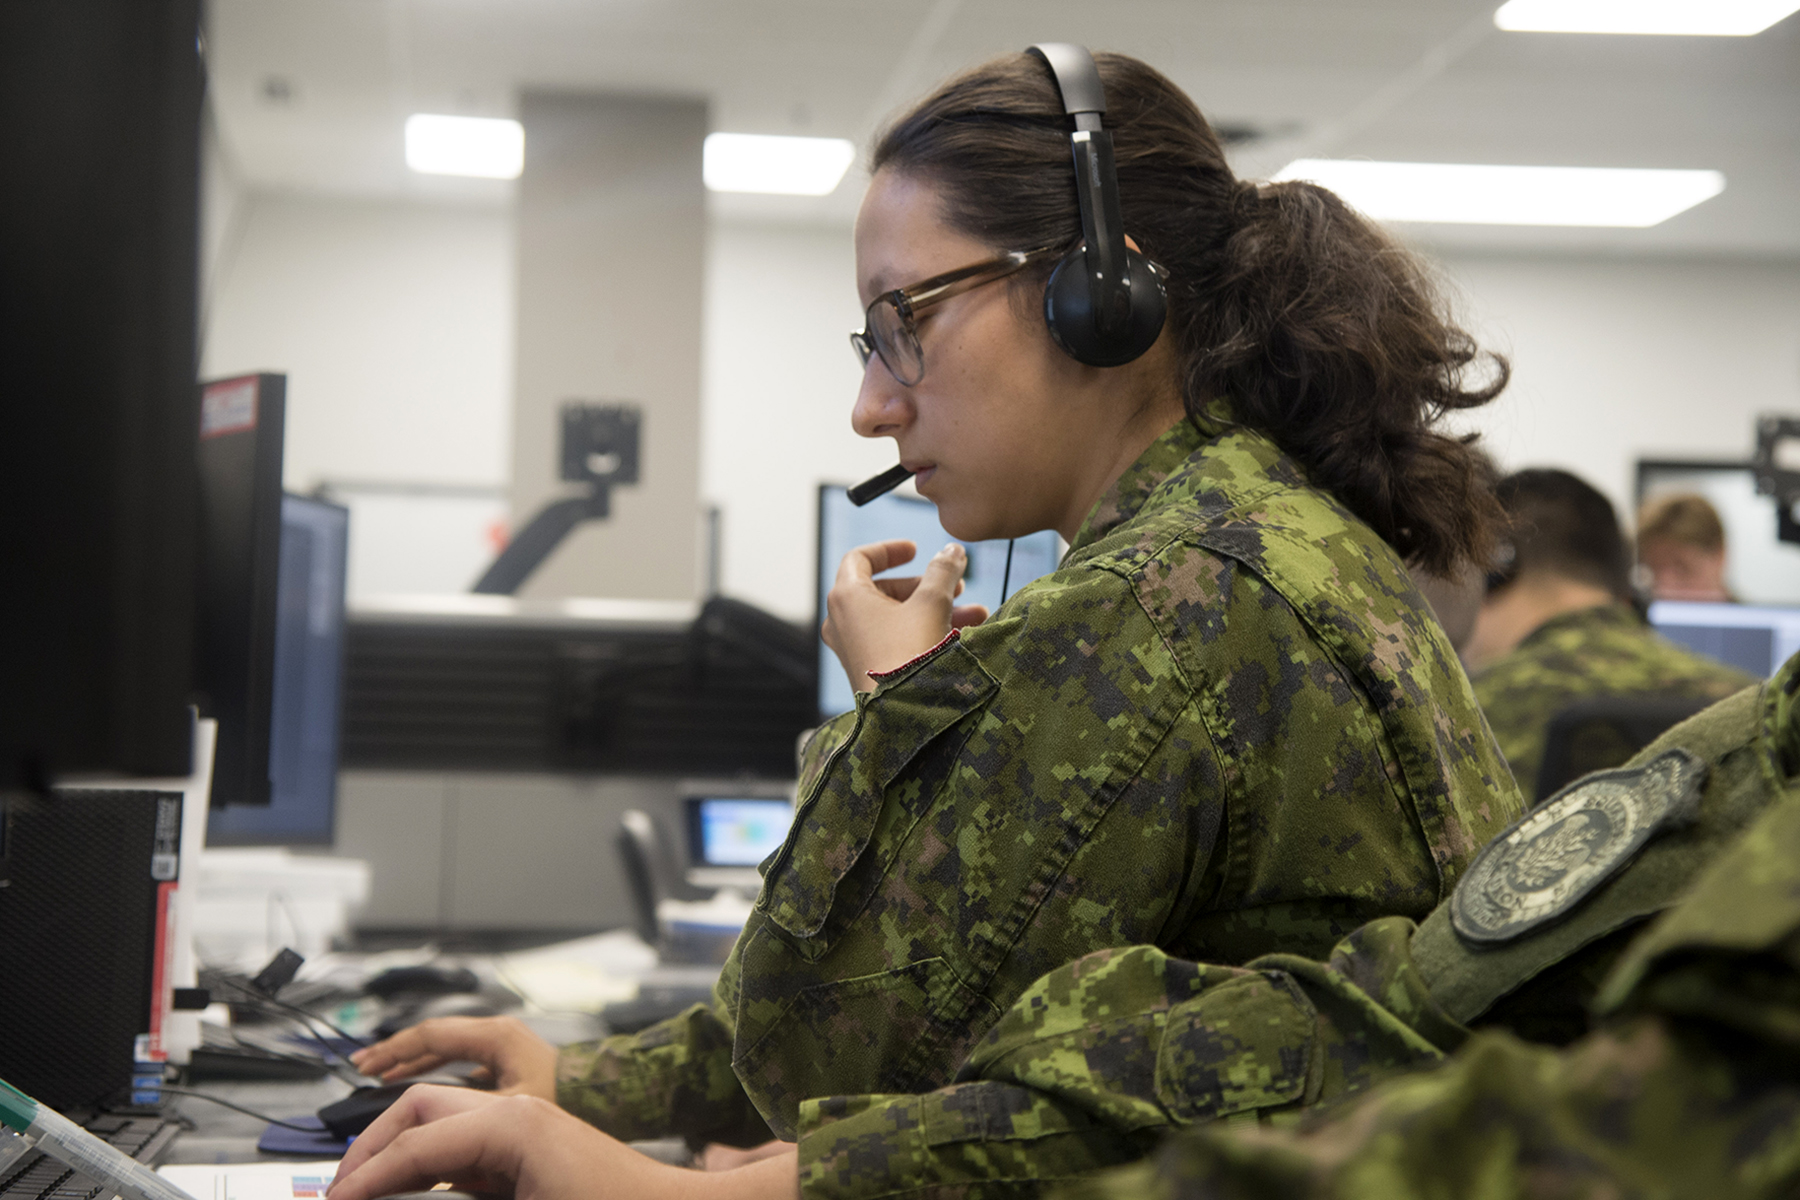 Lieutenant Janine Girard, an air battle manager, takes part in Exercise Coalition Virtual Flag 19-4, a worldwide synthetic training exercise replicating major battlefield operations that took place from September 9 to 20, 2019, at the exercise's 22 Wing North Bay, Ontario, location. PHOTO: Corporal Robert Ouellette, NB01-2019-233-7